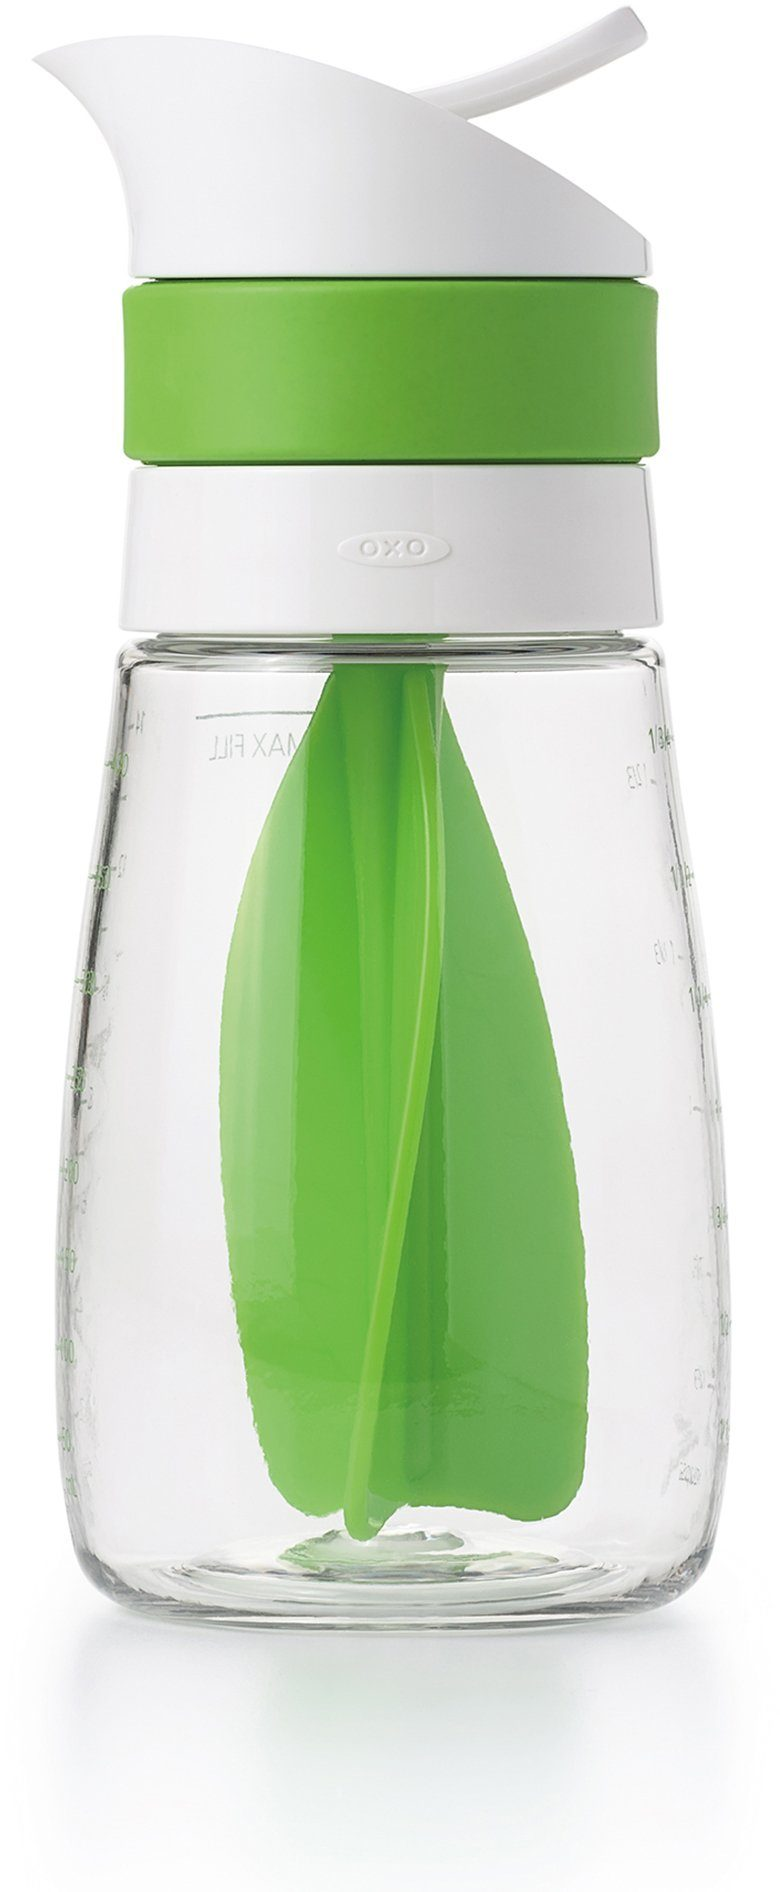 OXO Twist & Pour-Mixer für Salatdressing